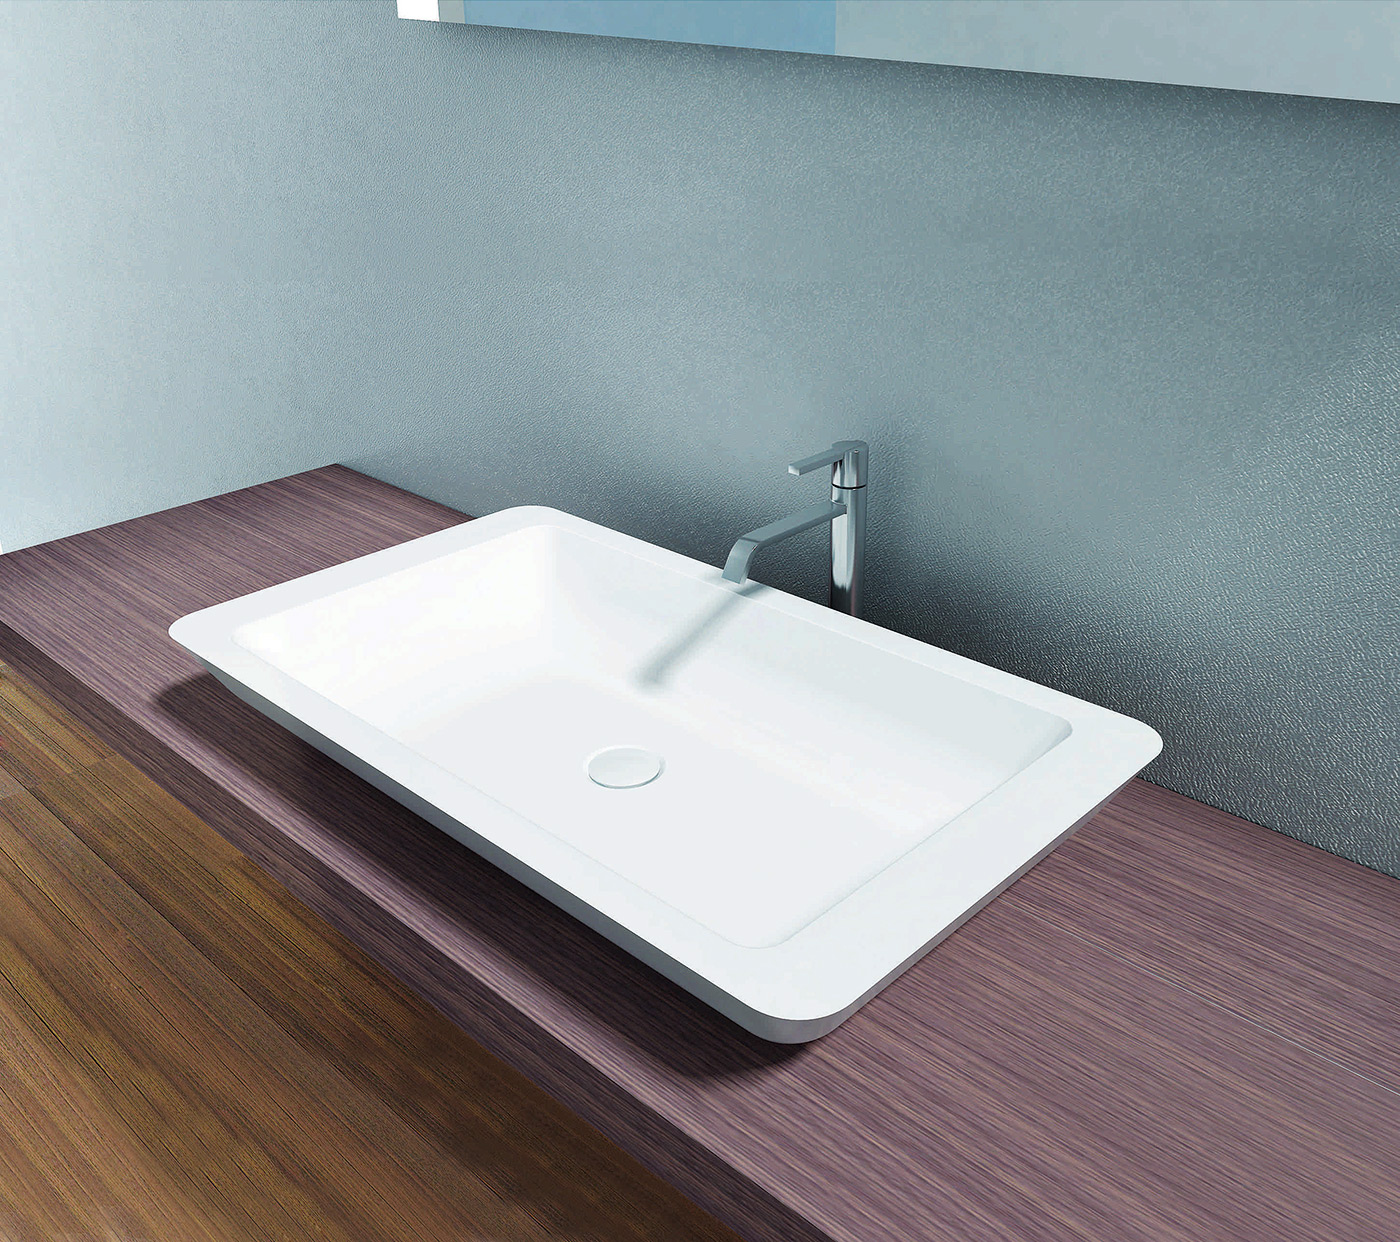 Bathroom Basins In Sydney Australia